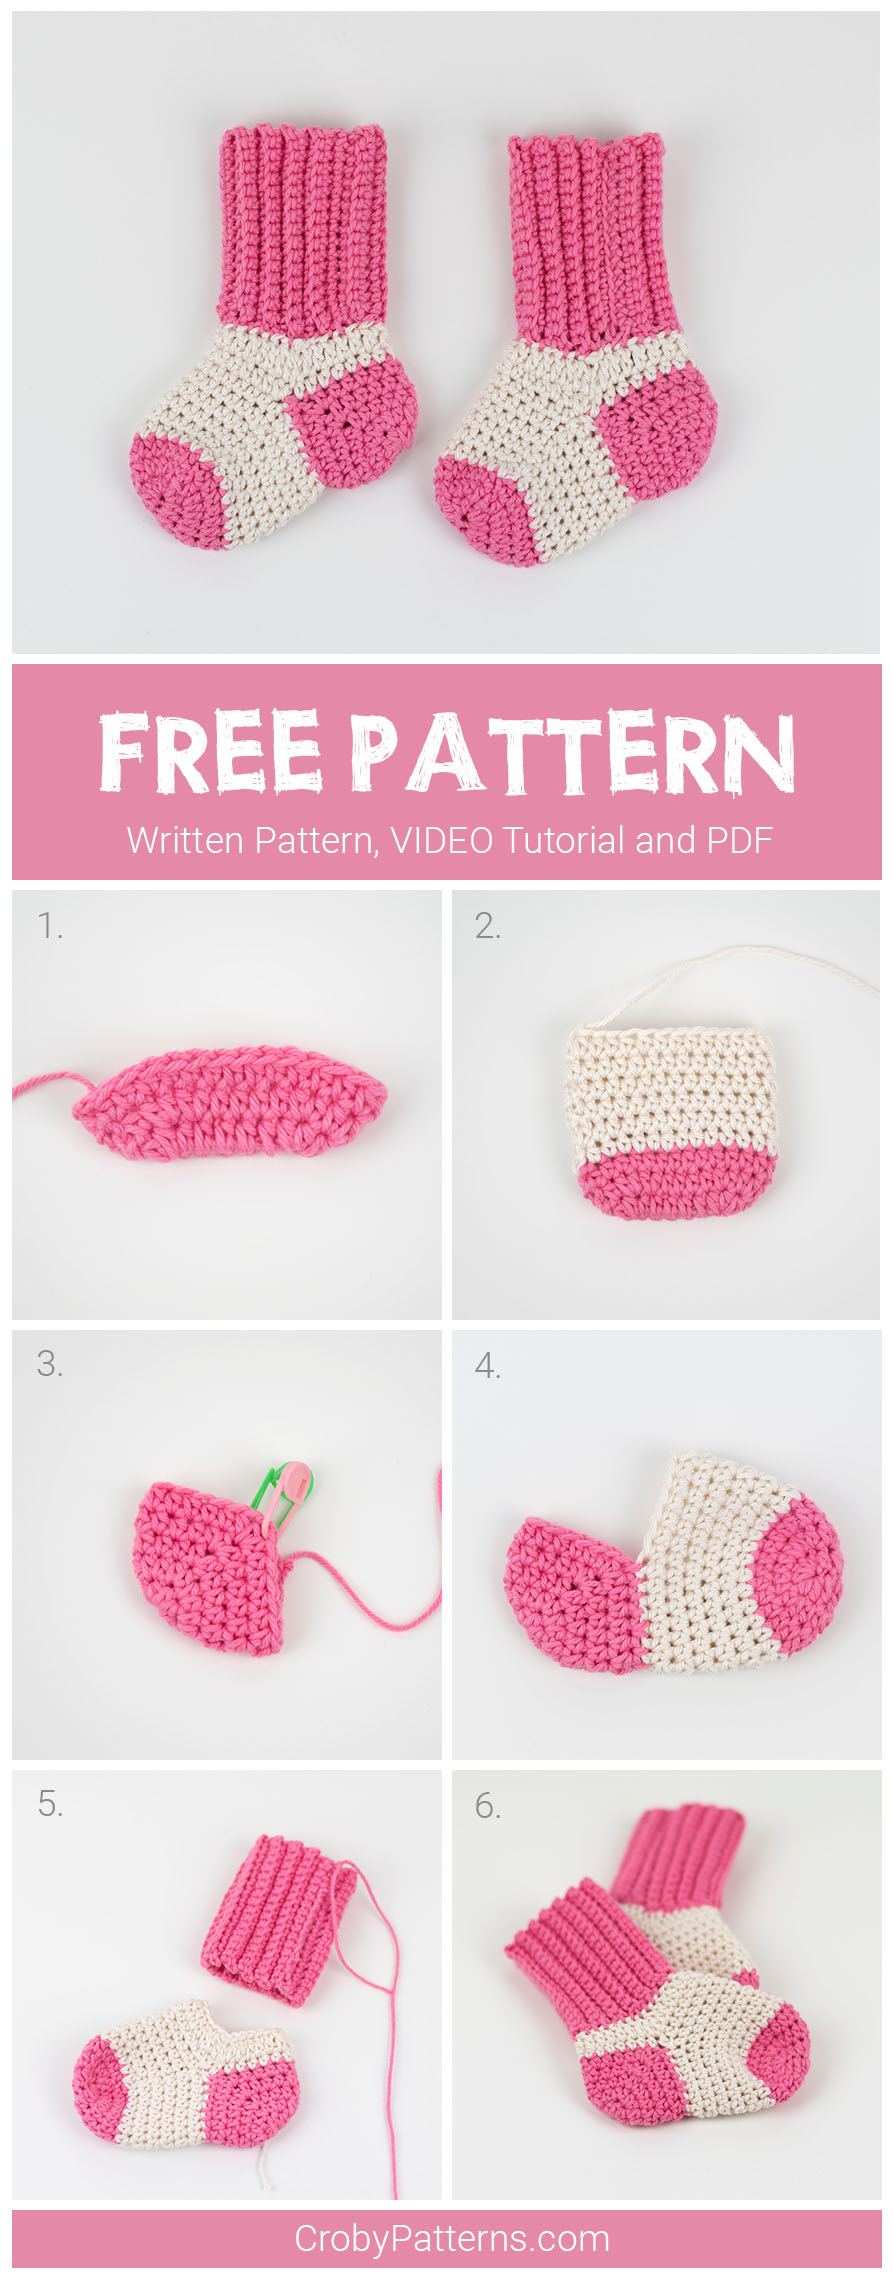 Cute Crochet Baby Socks Pattern by Croby Patterns